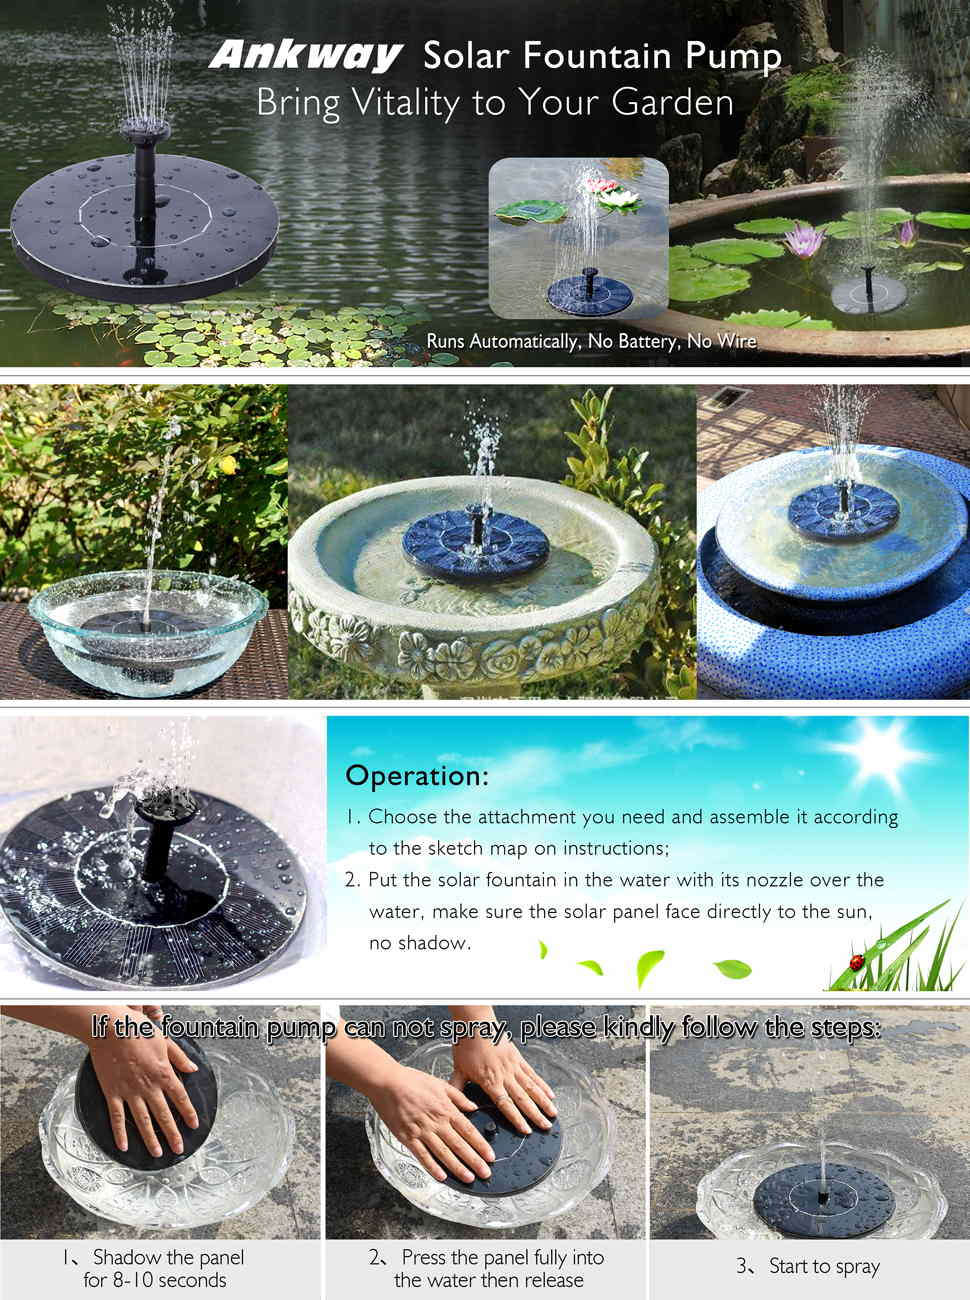 Water fountain pump care - Now It S Getting Warmer And Warmer Ankway Fountain Pump Is A Great Choose To Attract The Birds To Bring Your Garden Vitality